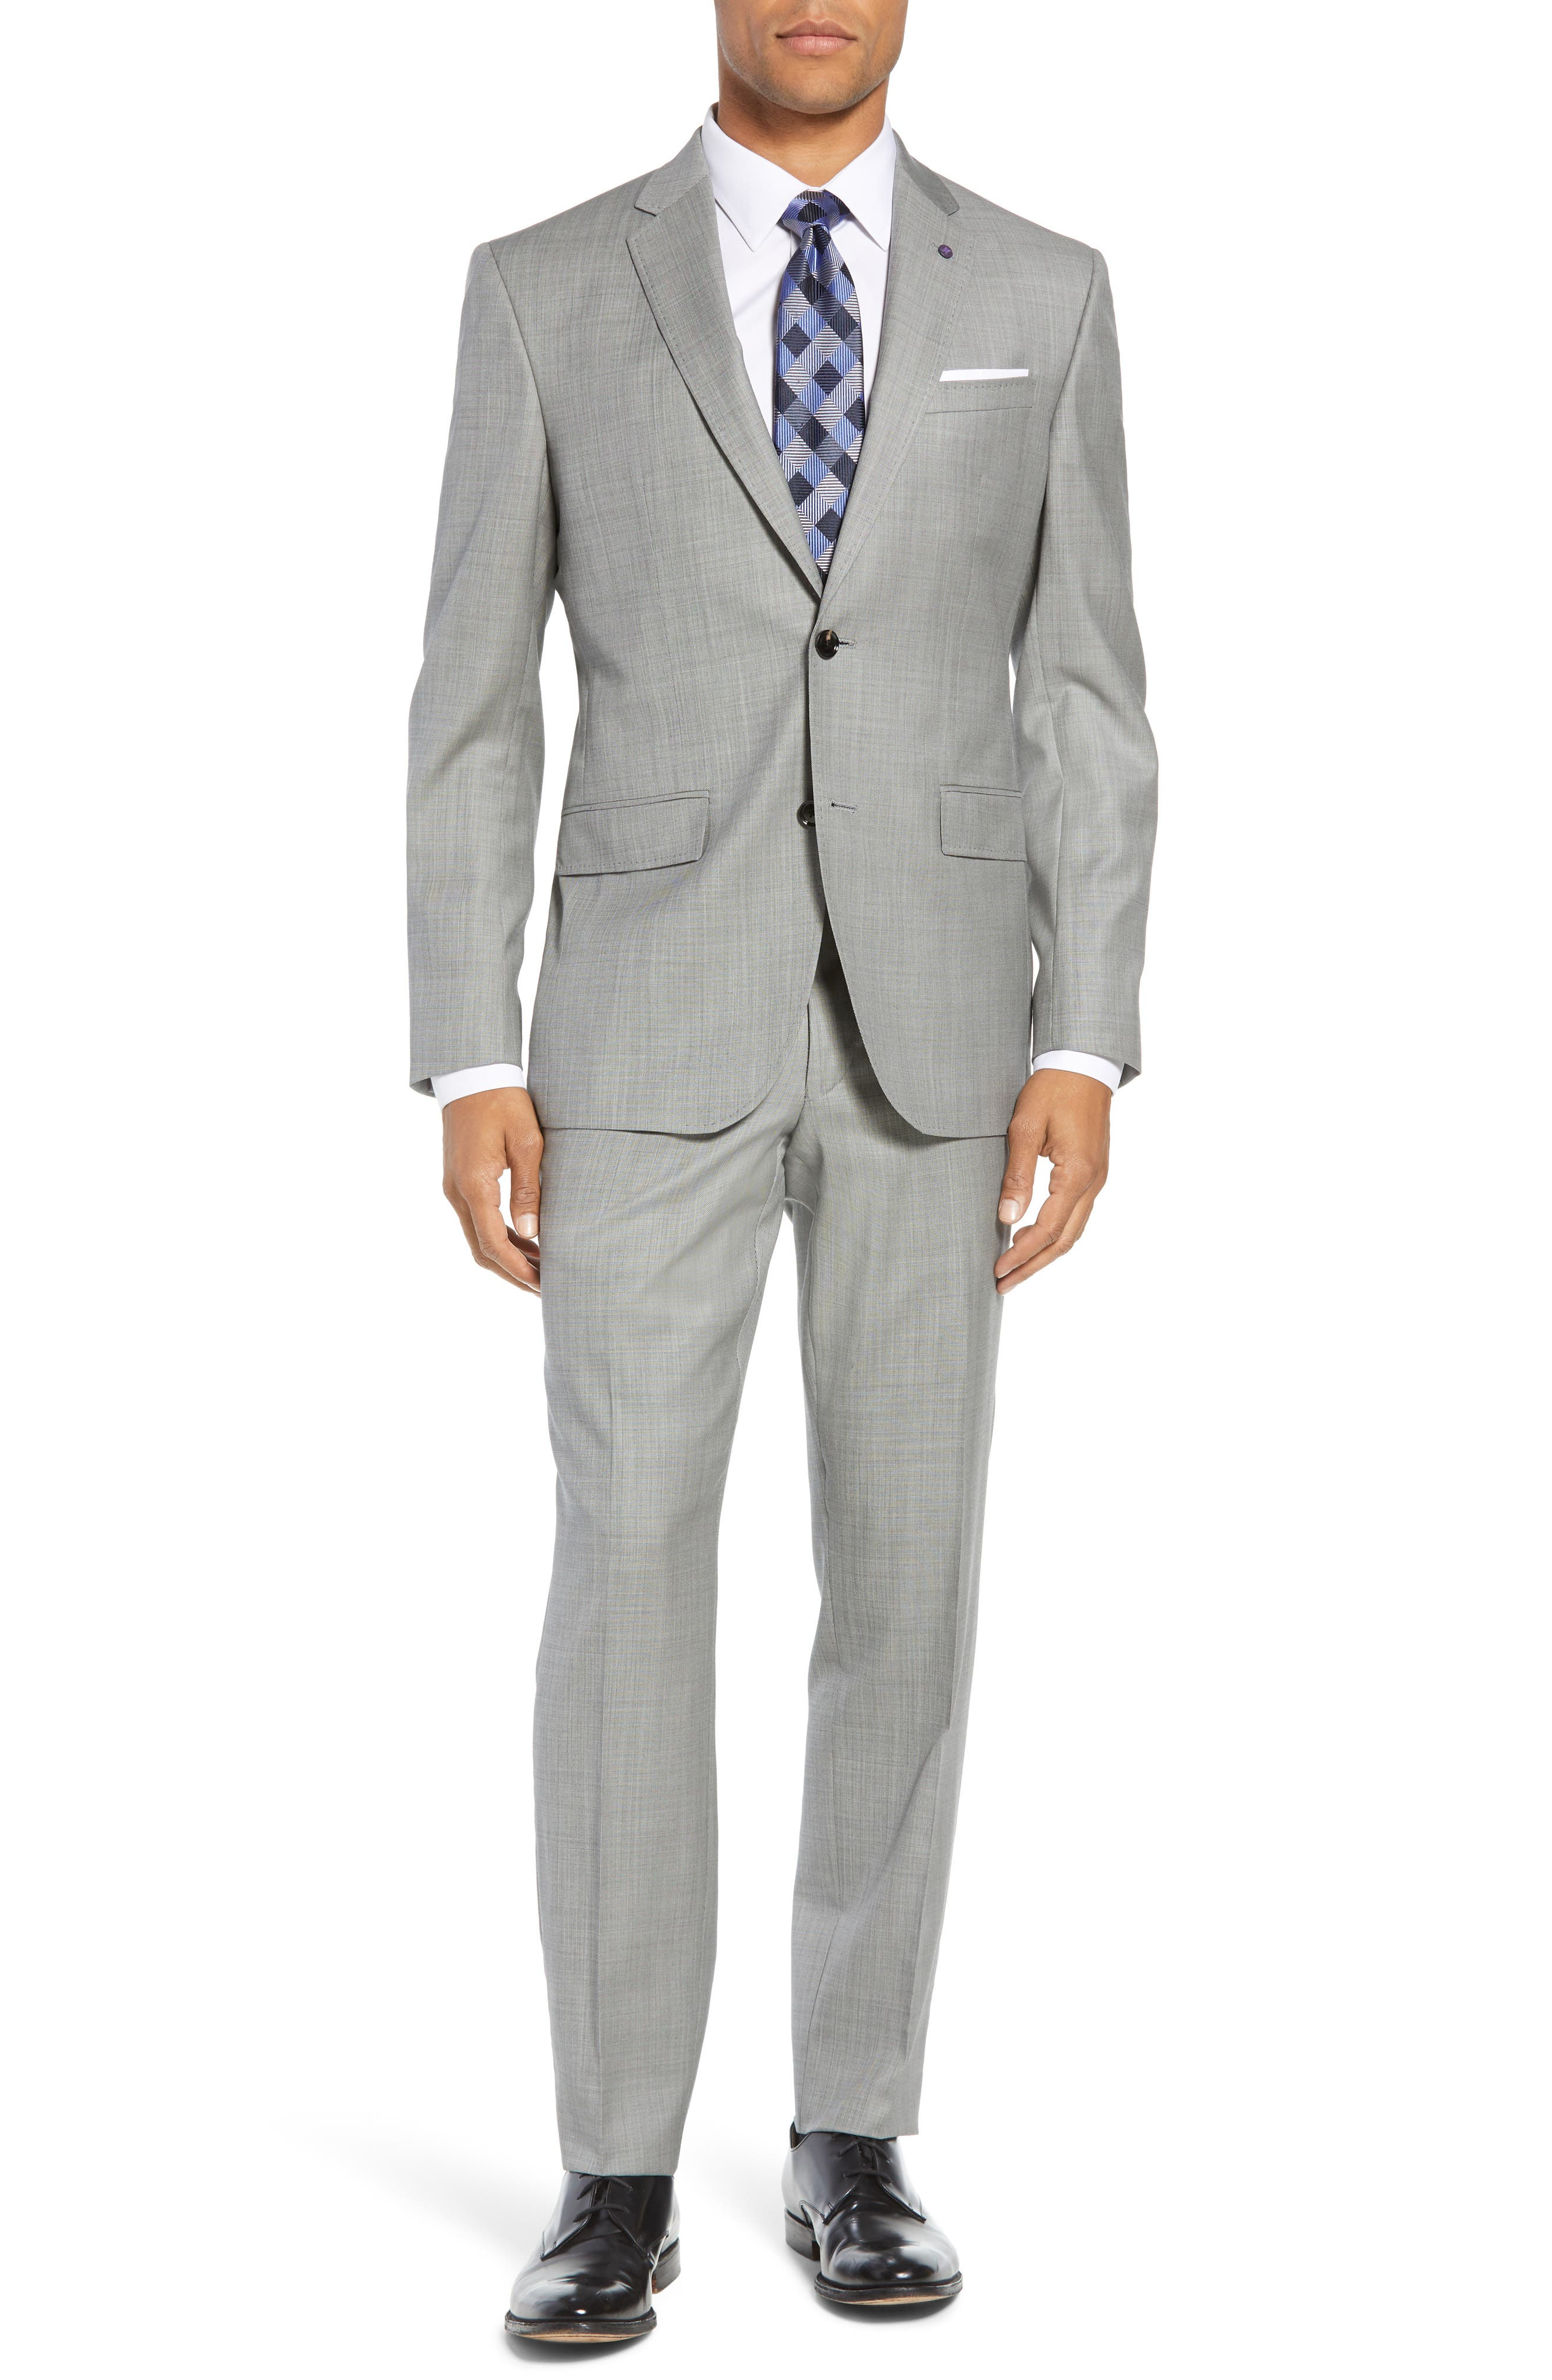 Jay Trim Fit Solid Wool Suit,                             Main thumbnail 1, color,                             LIGHT GREY